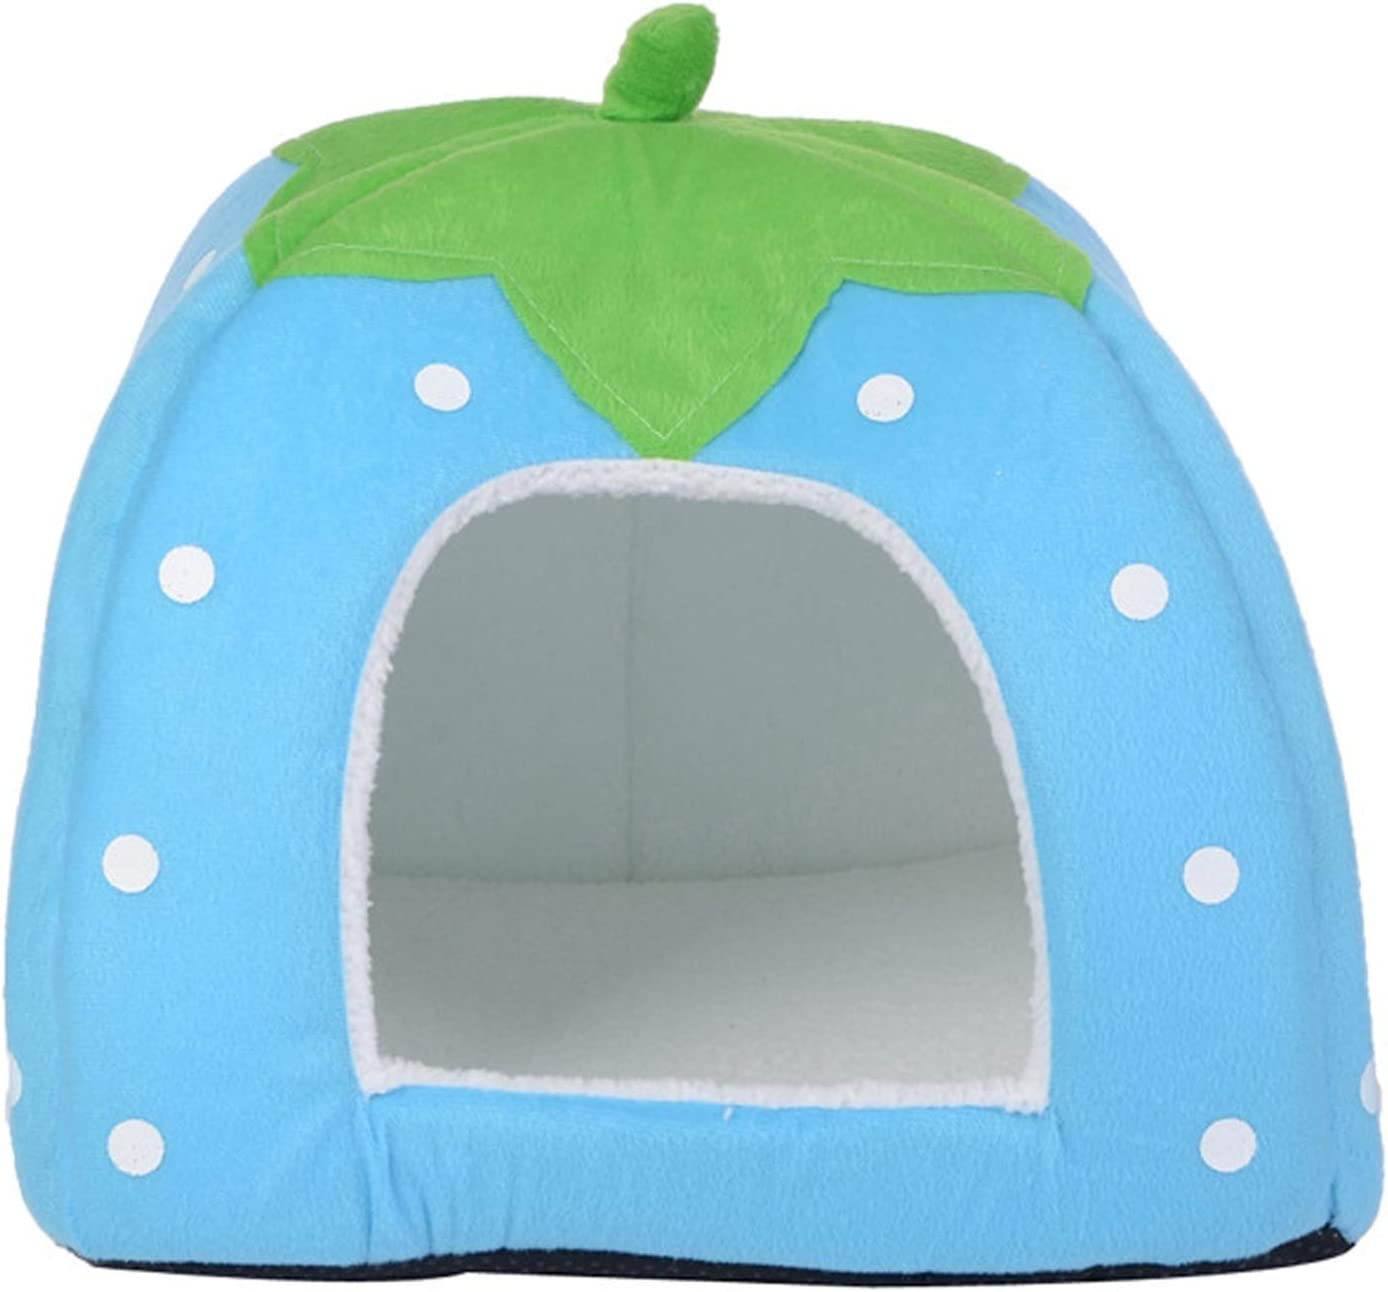 Pet Bed Lovely Portland Mall Kennel Nest Waterloo Manufacturer direct delivery Strawberr New Litter